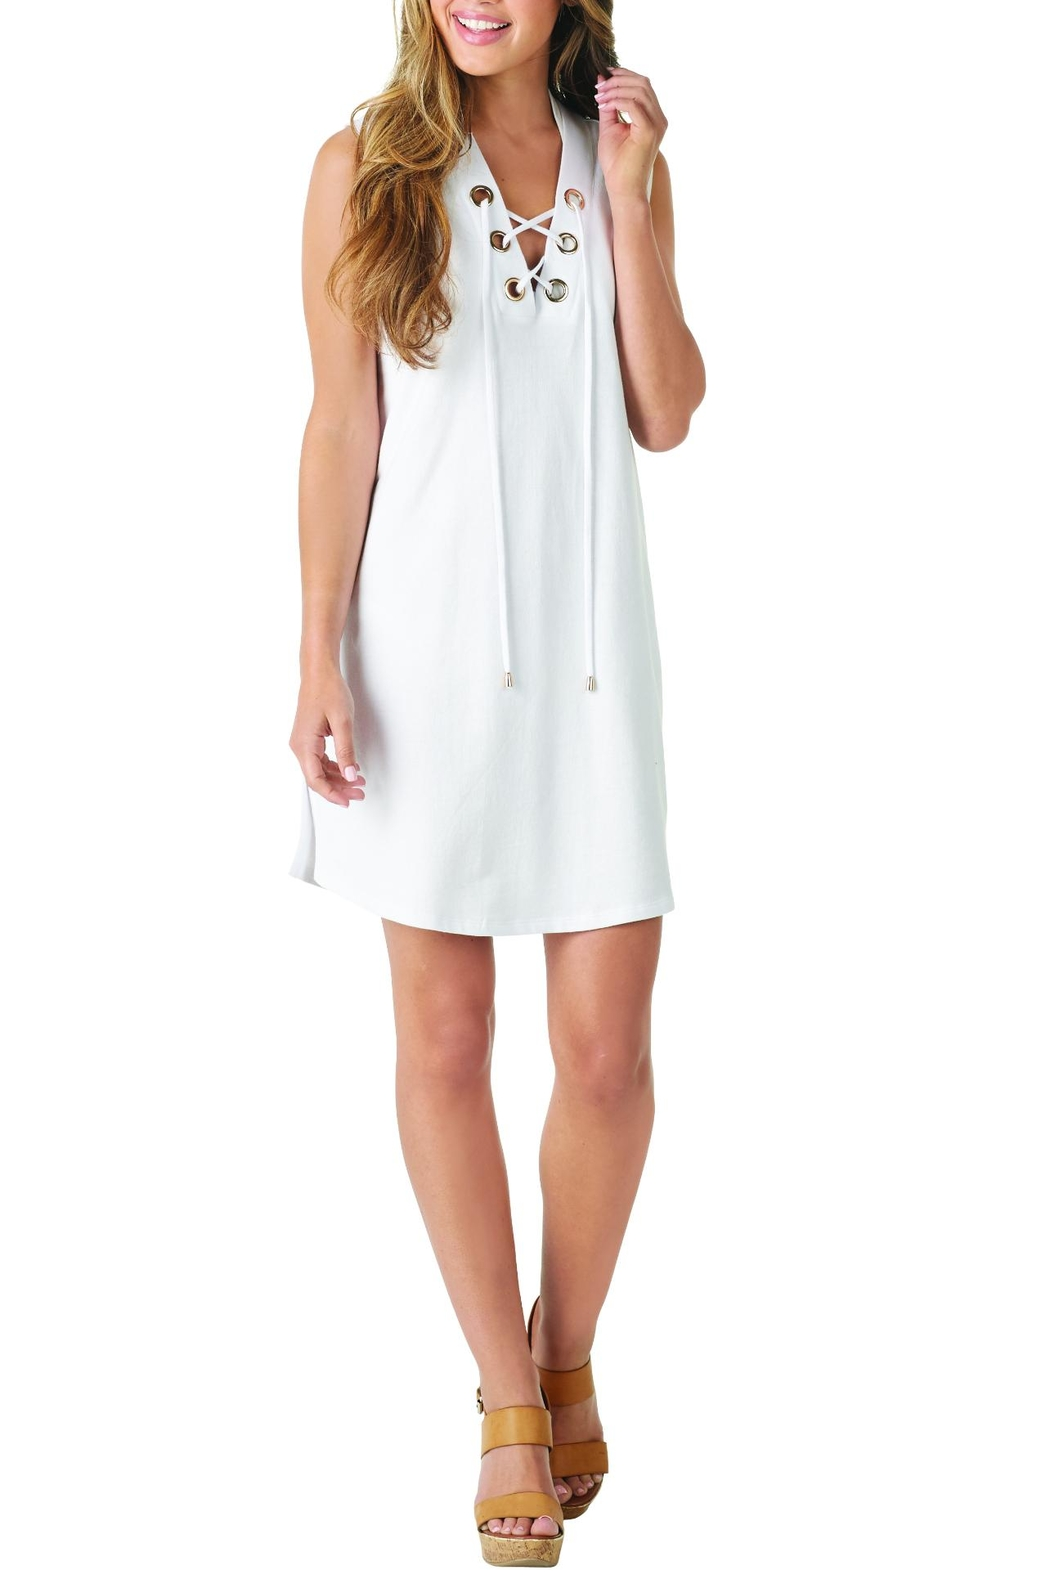 Mud Pie Lulu Lace-Up Cover-Up - Main Image